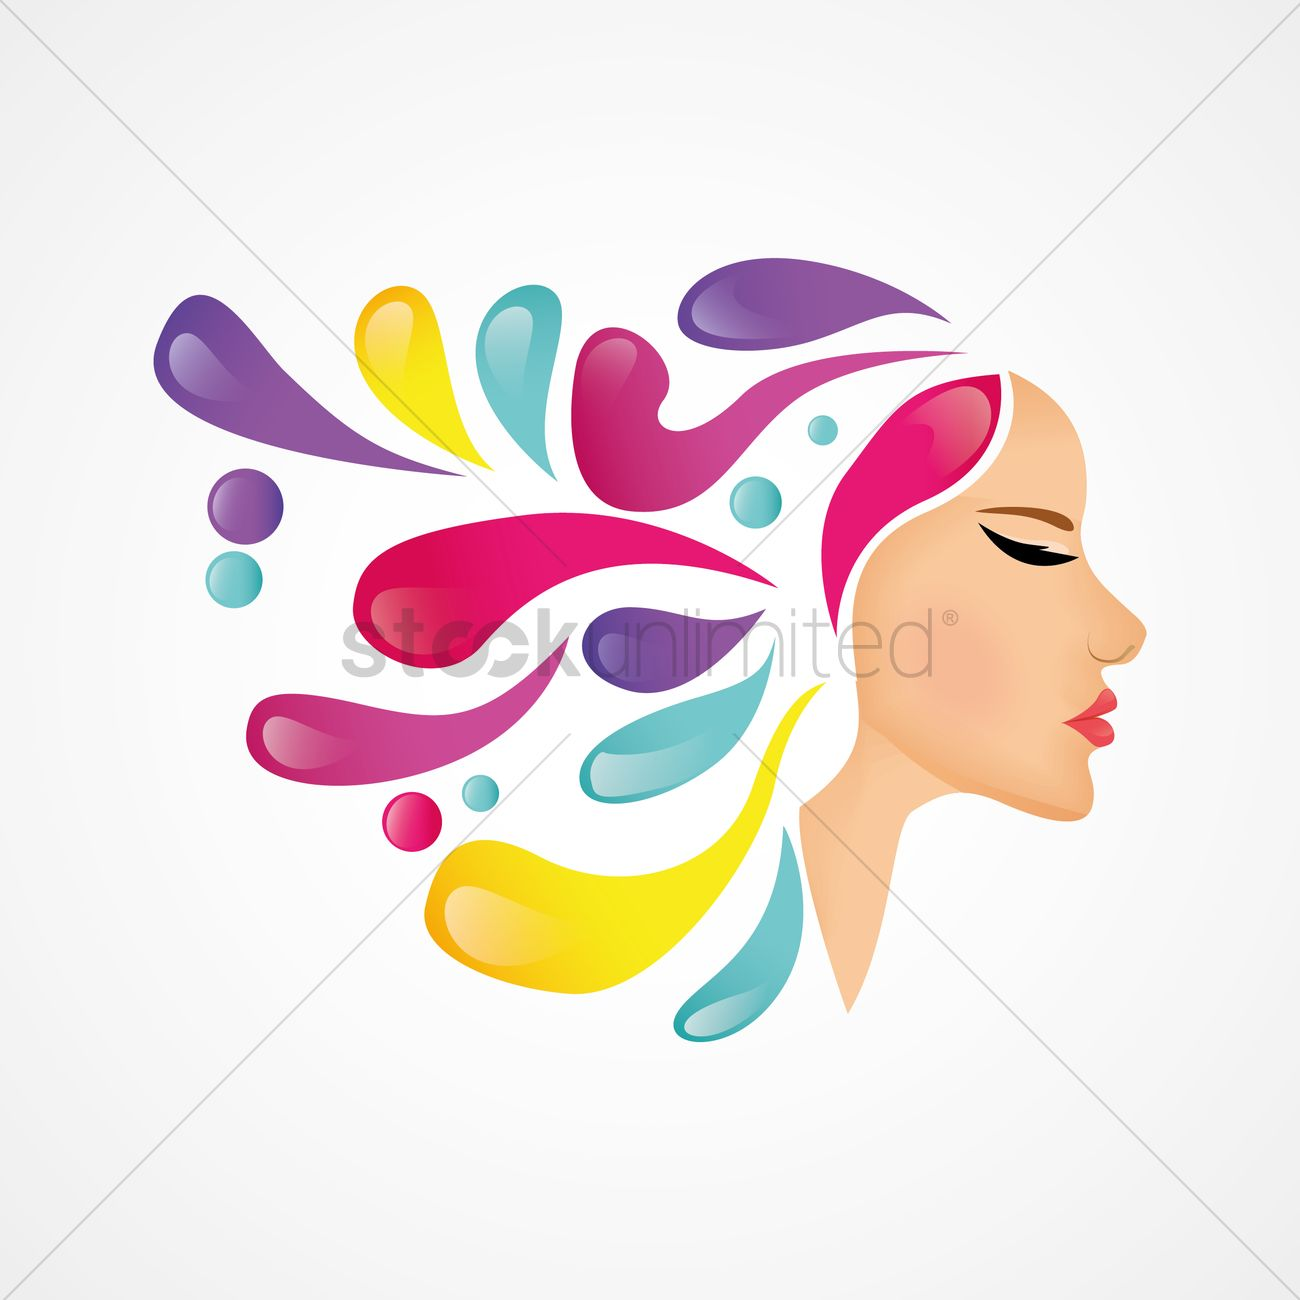 Free Design concept for beauty salon Vector Image.